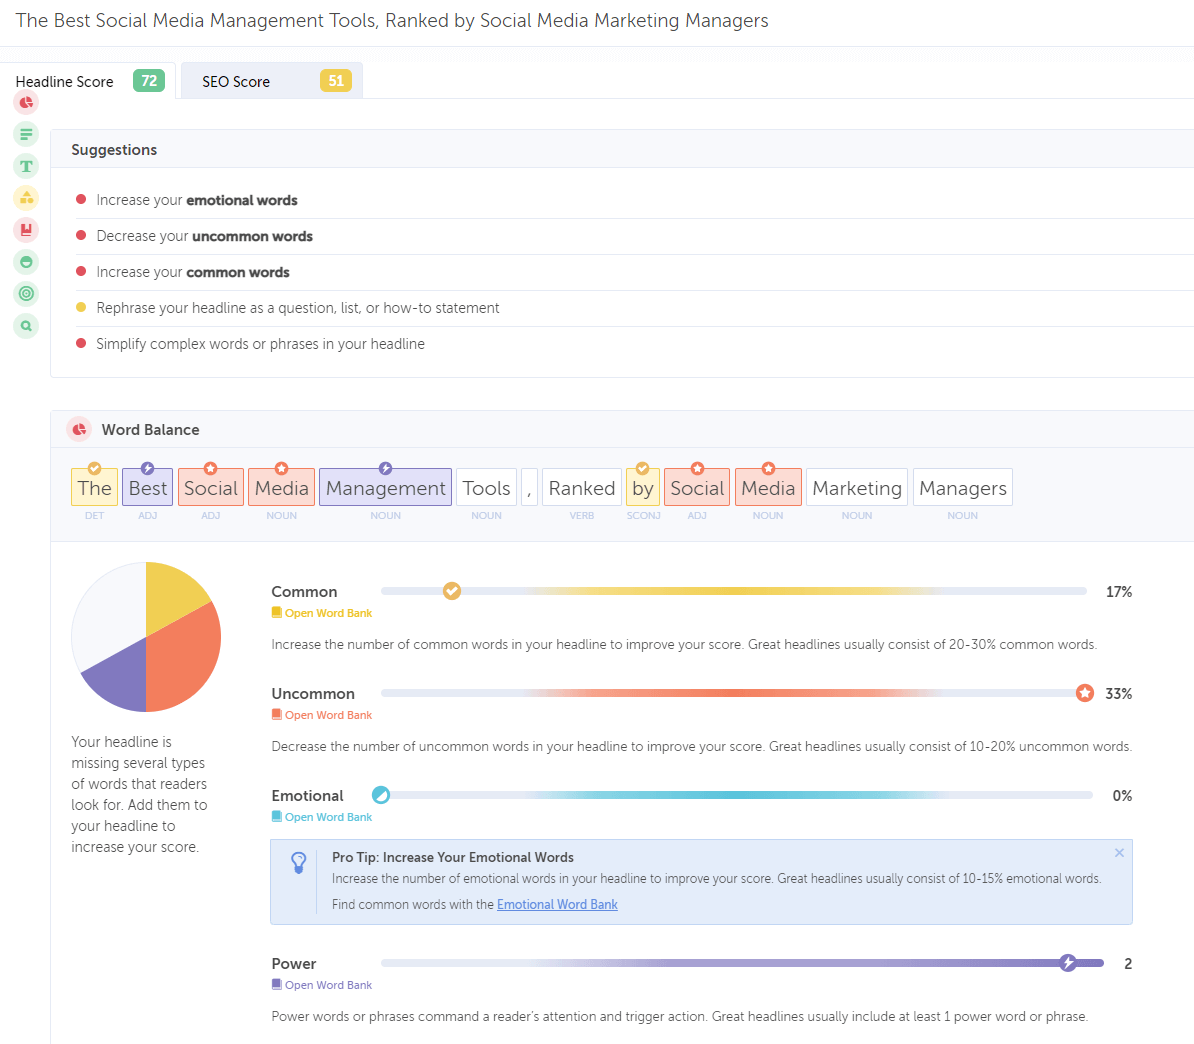 CoSchedule's Headline Analyzer - a free tool that helps you optimize headlines for social media, SEO, and more